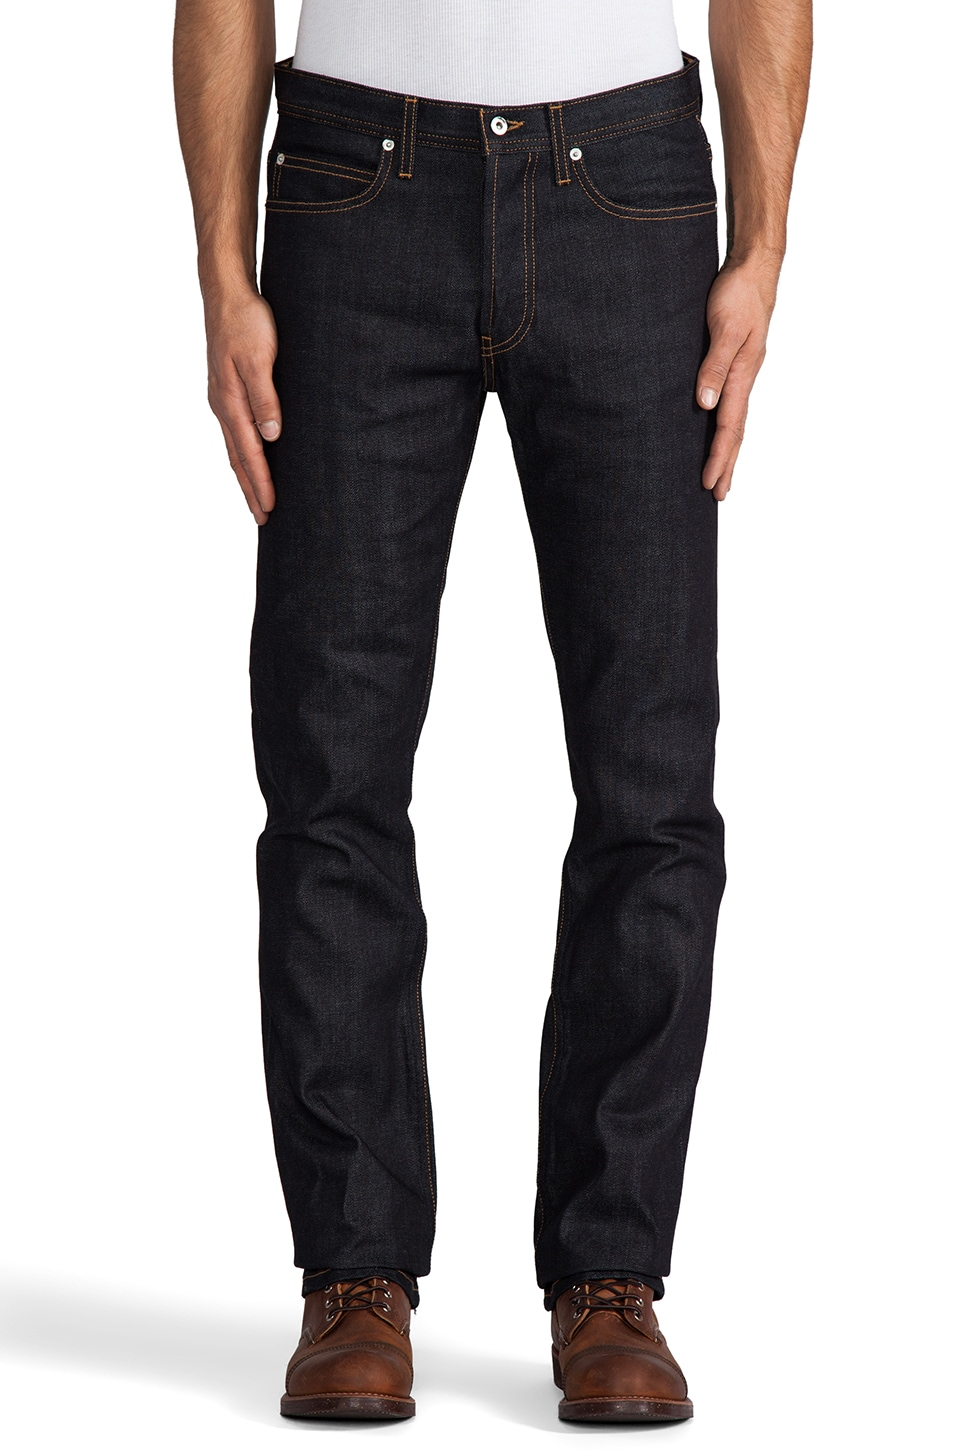 United Stock Dry Goods Narrow 12.5oz Selvage in Indigo Contrast